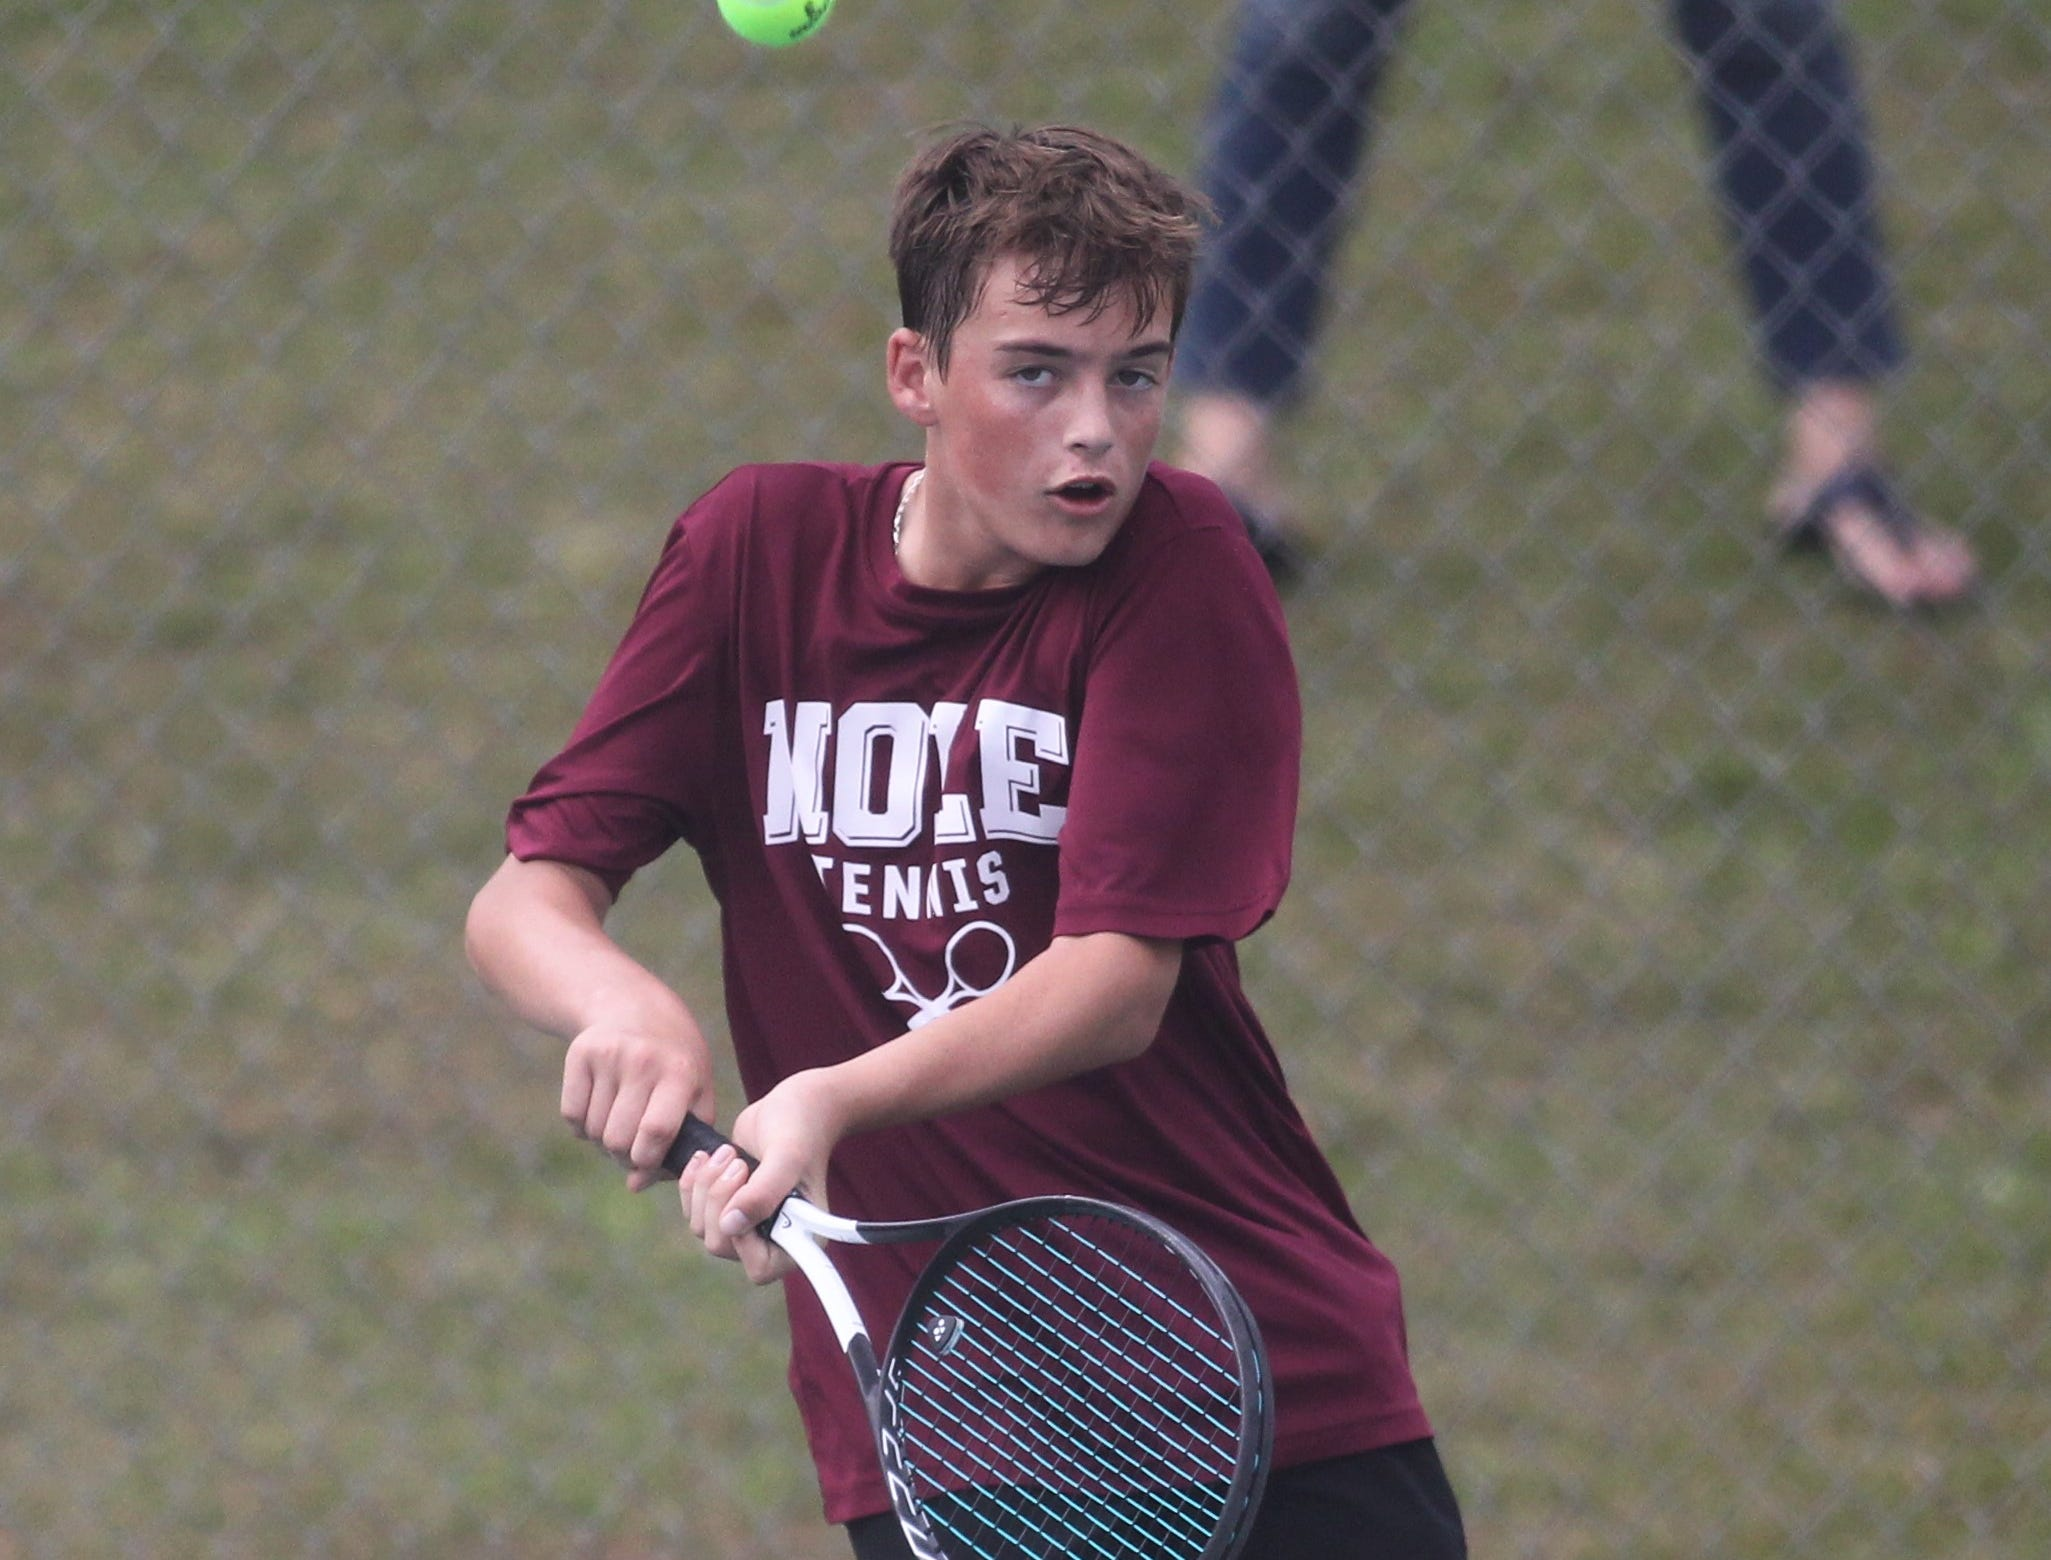 Florida High's Gabe Roane plays during the high school boys and girls city tennis tournament at Tom Brown Park on Thursday, March 14, 2019.